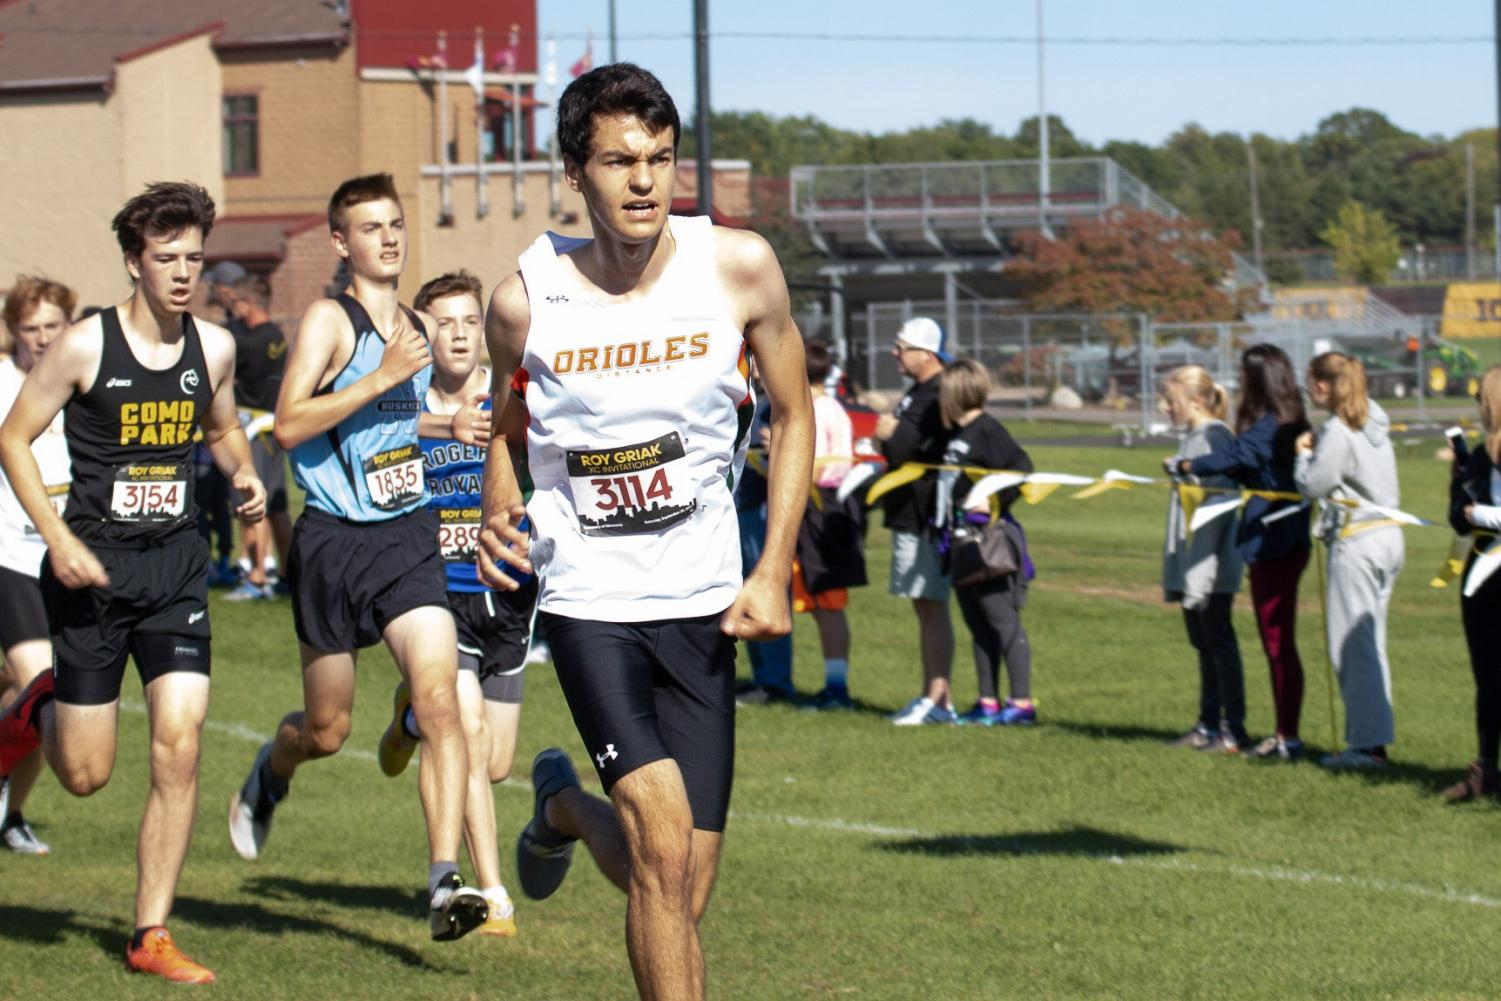 Senior David Klein dashes to the finish line of the Roy Griak Invitational Sept. 28. Klein finished the five kilometer race with a time of 19.40.4 which places him 294th of 561 competitors.